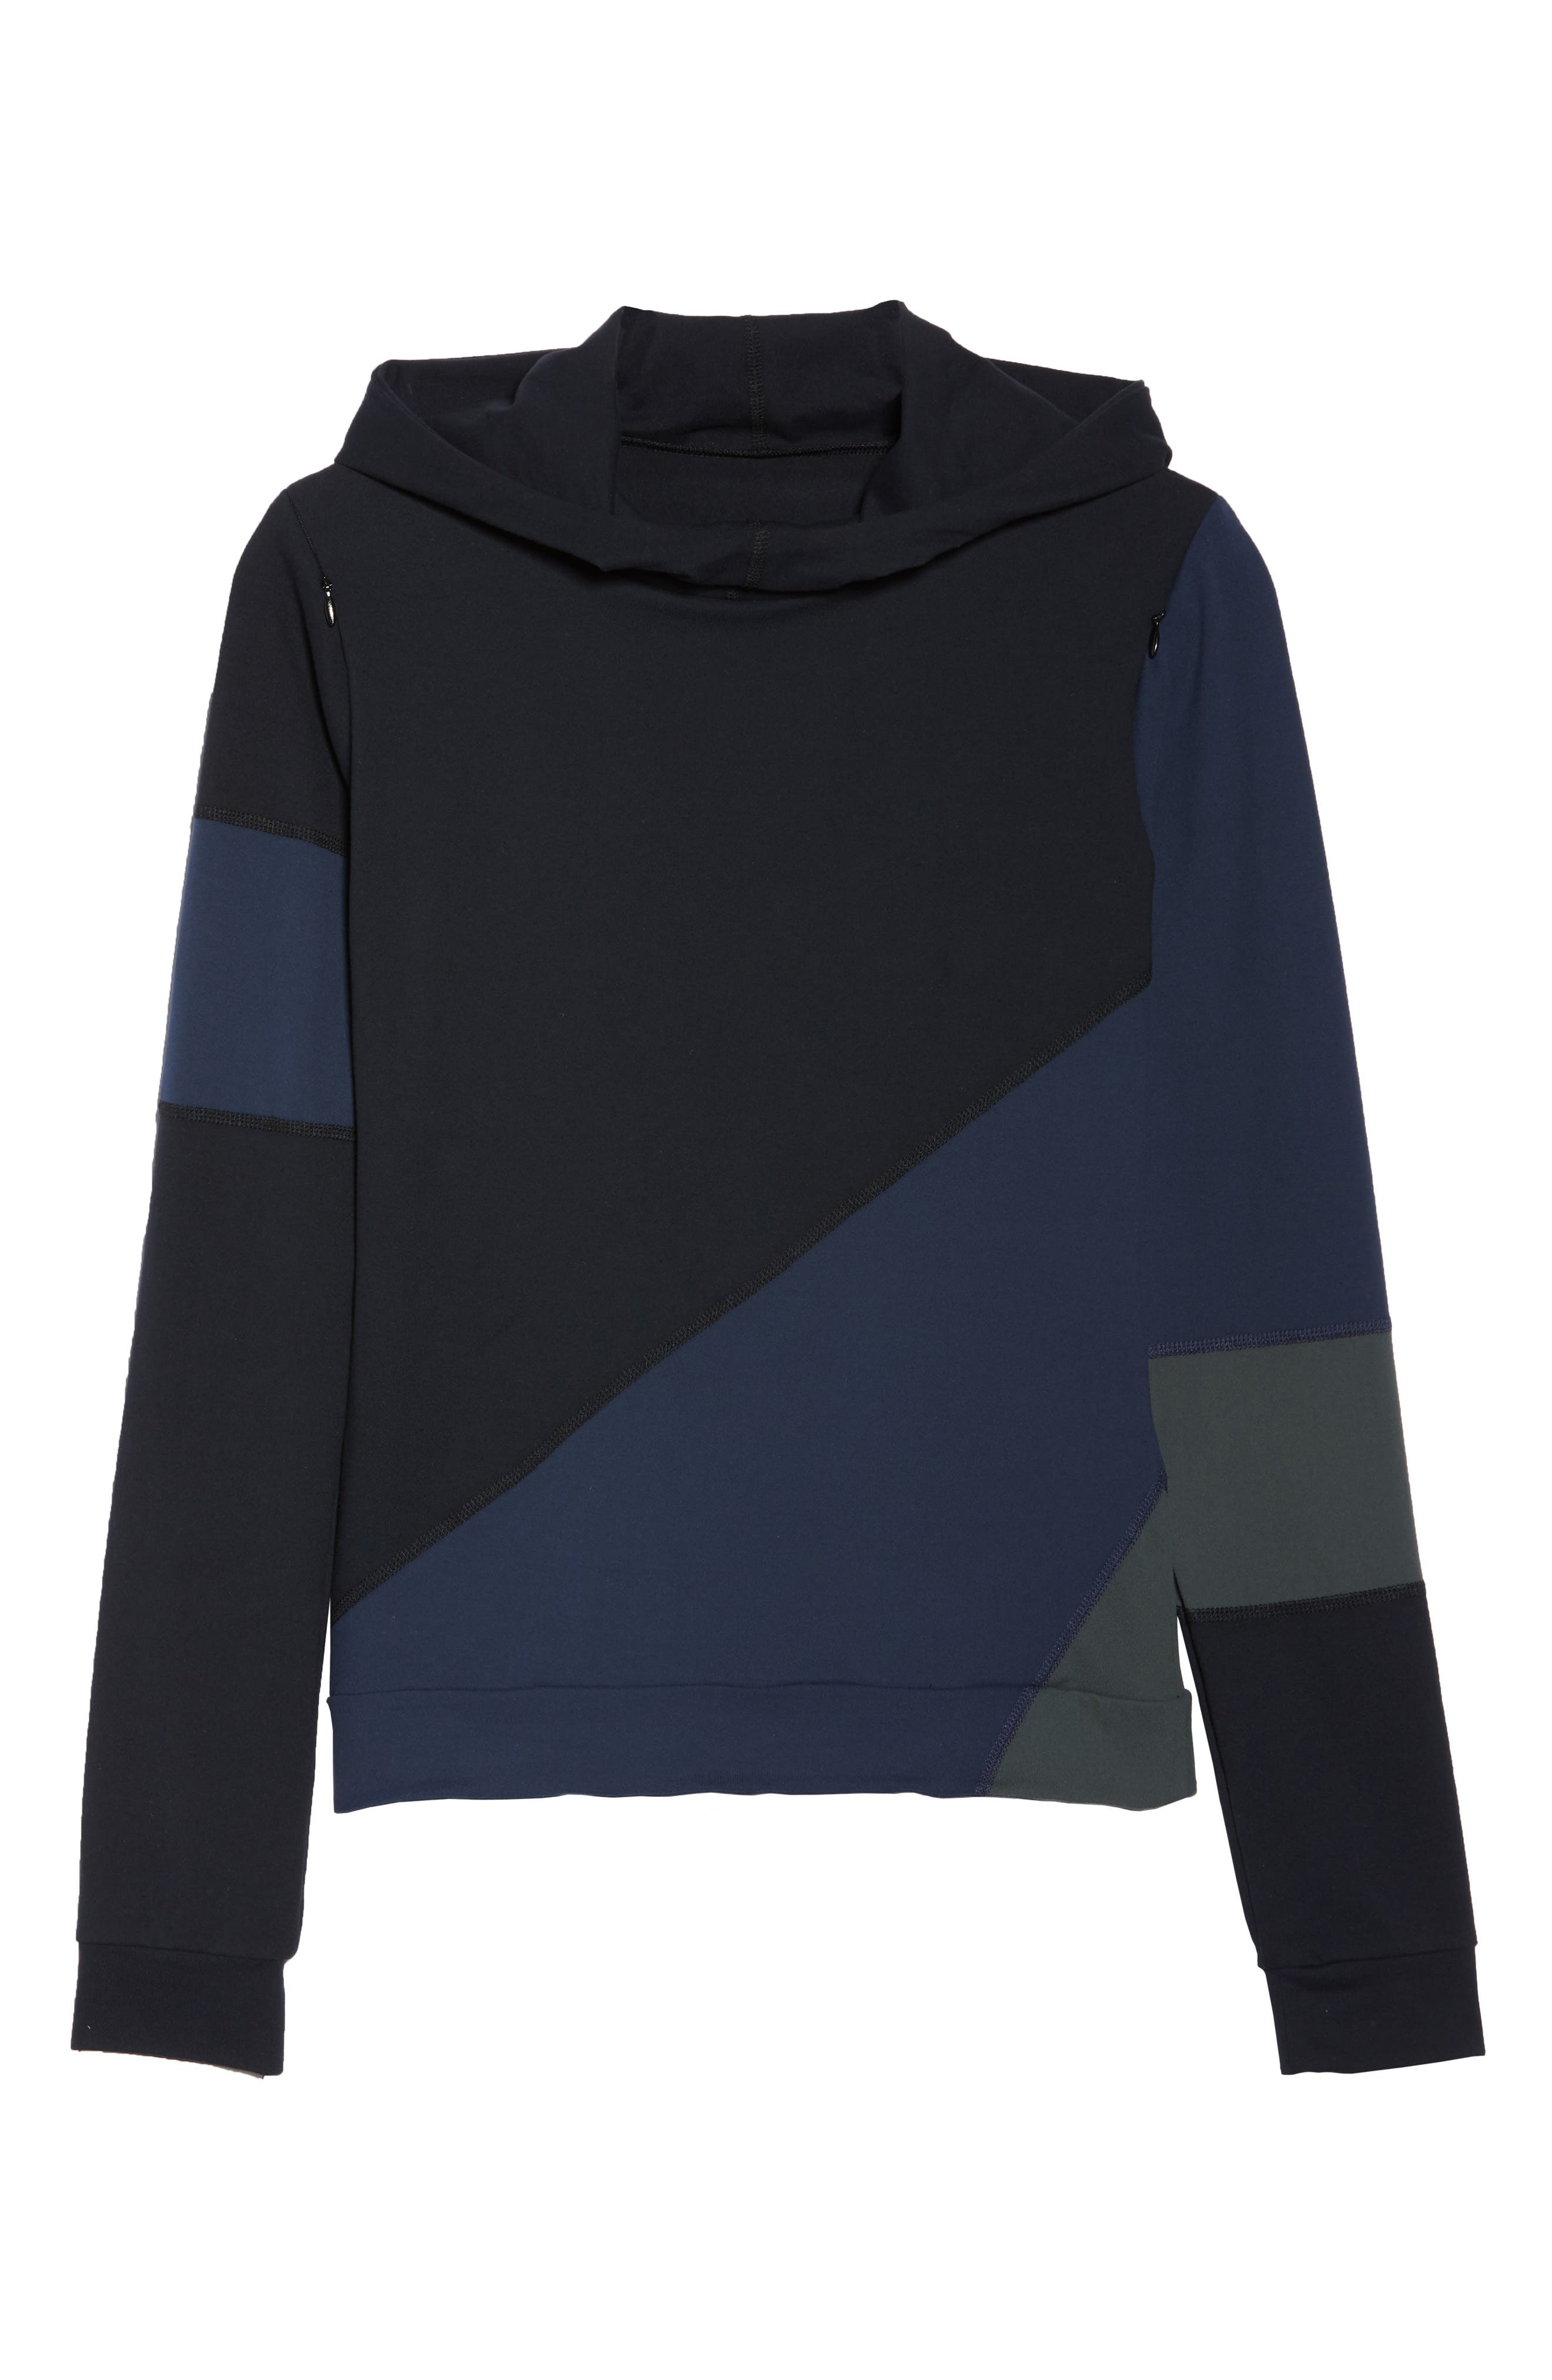 BoomBoom Athletica Tricolor Brushed Hoodie,                             Alternate thumbnail 7, color,                             NAVY/ BLACK/ GREEN